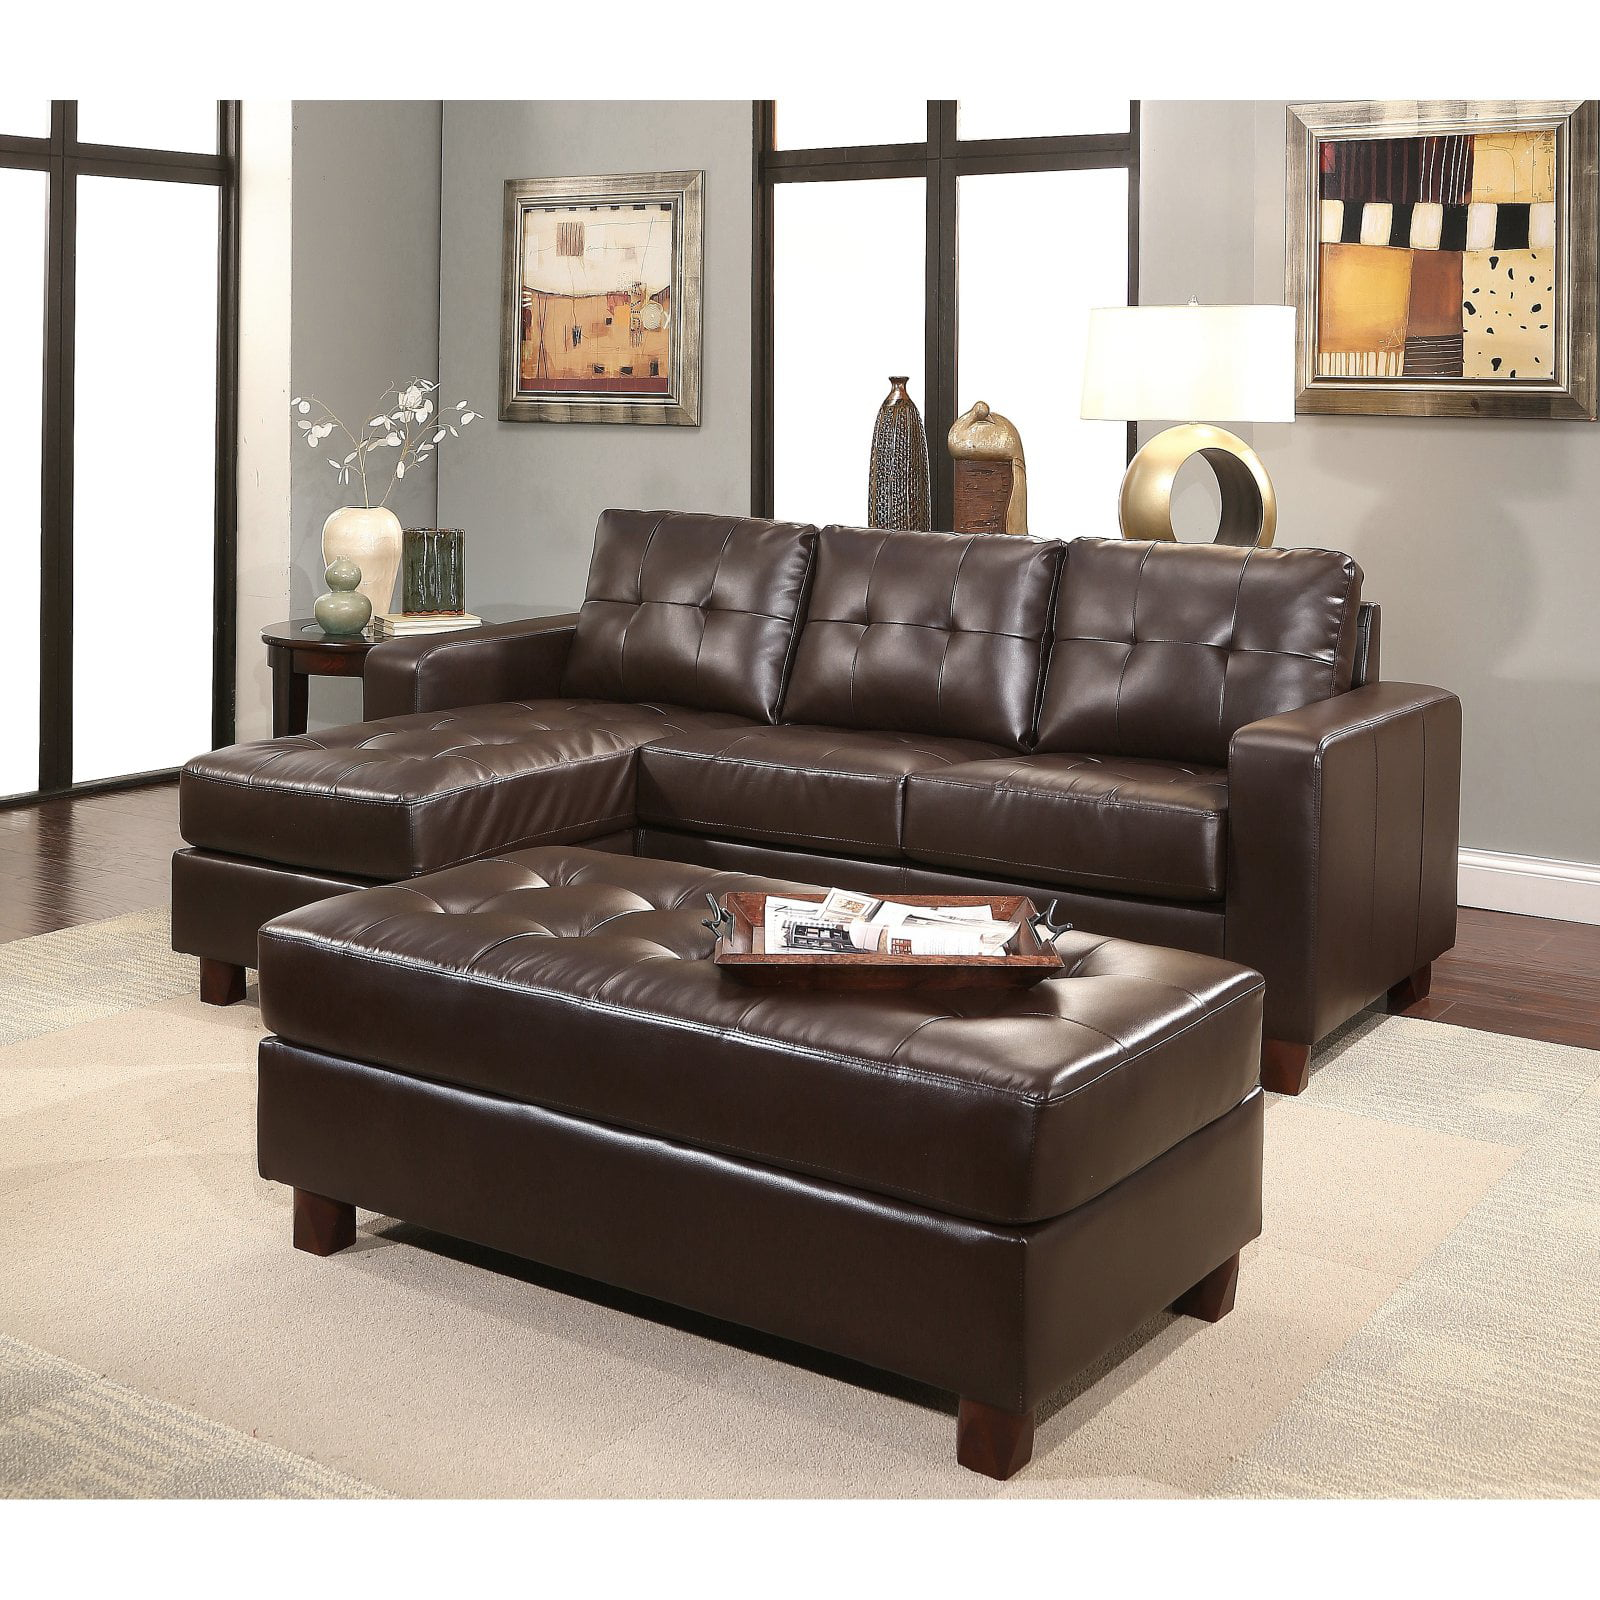 Abbyson Taylor Leather Reversible Sectional And Ottoman Walmart Com Walmart Com